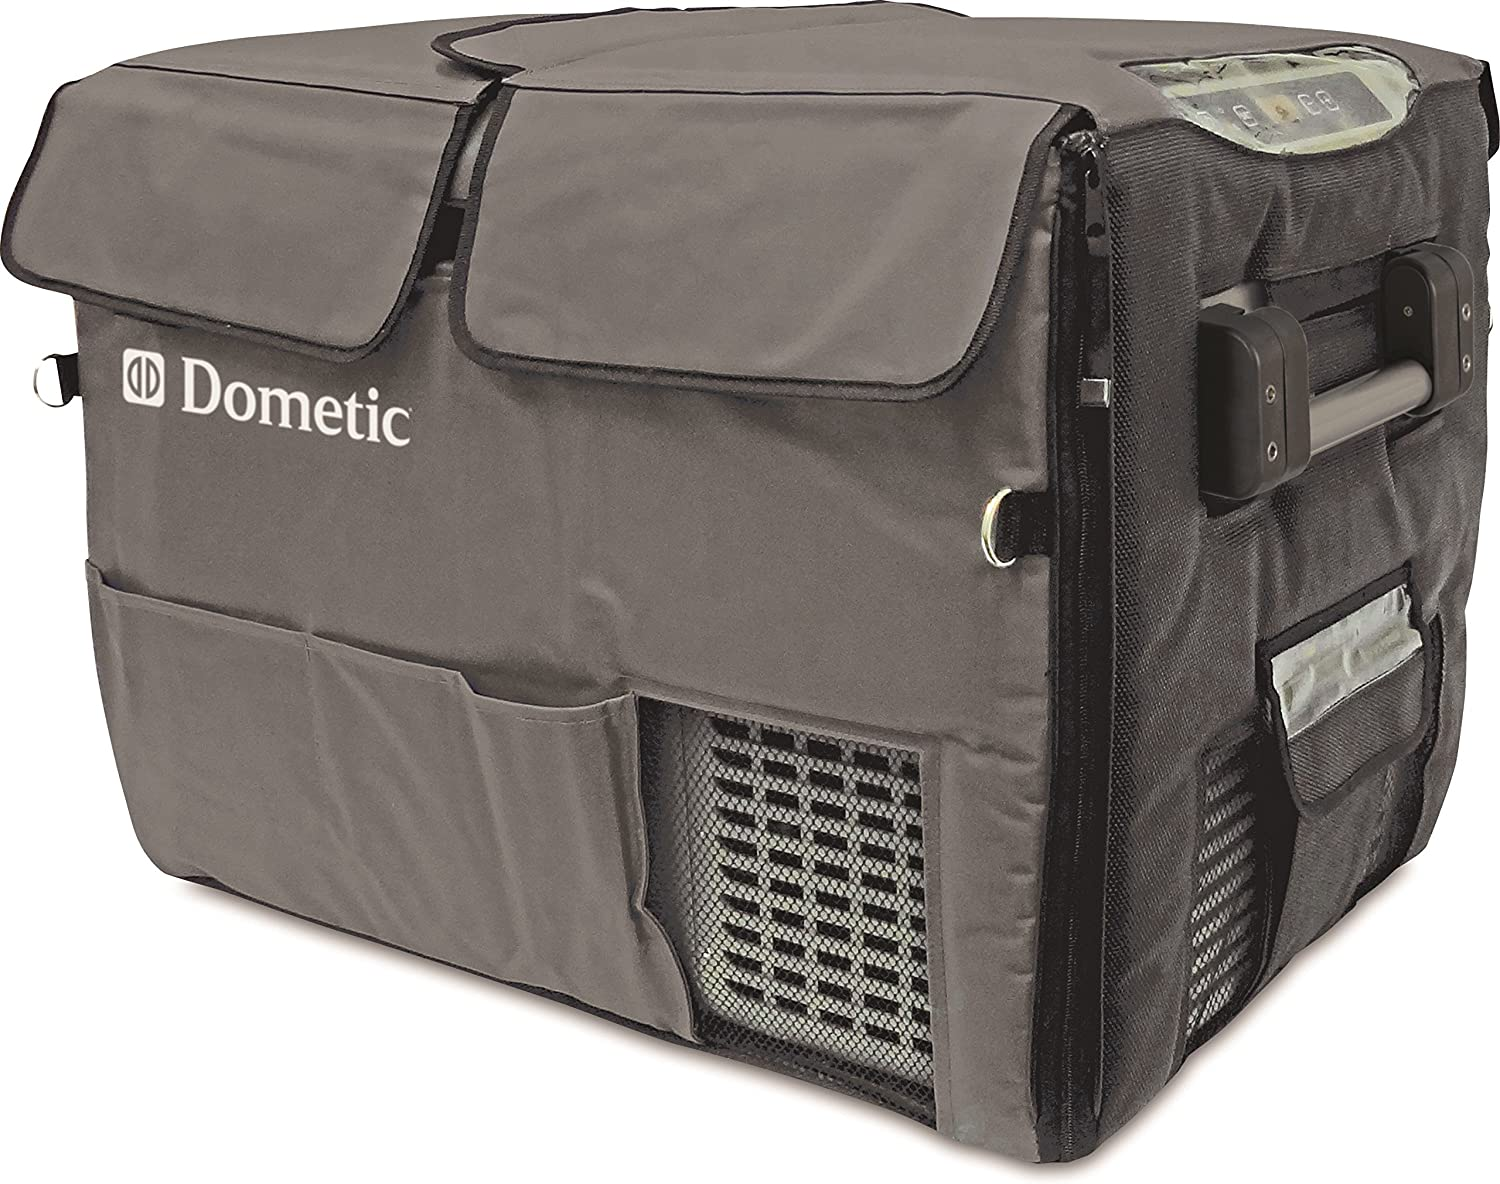 Dometic CFX-CVR65DZ Insulated Protective Cover (for CFX-65DZUS)